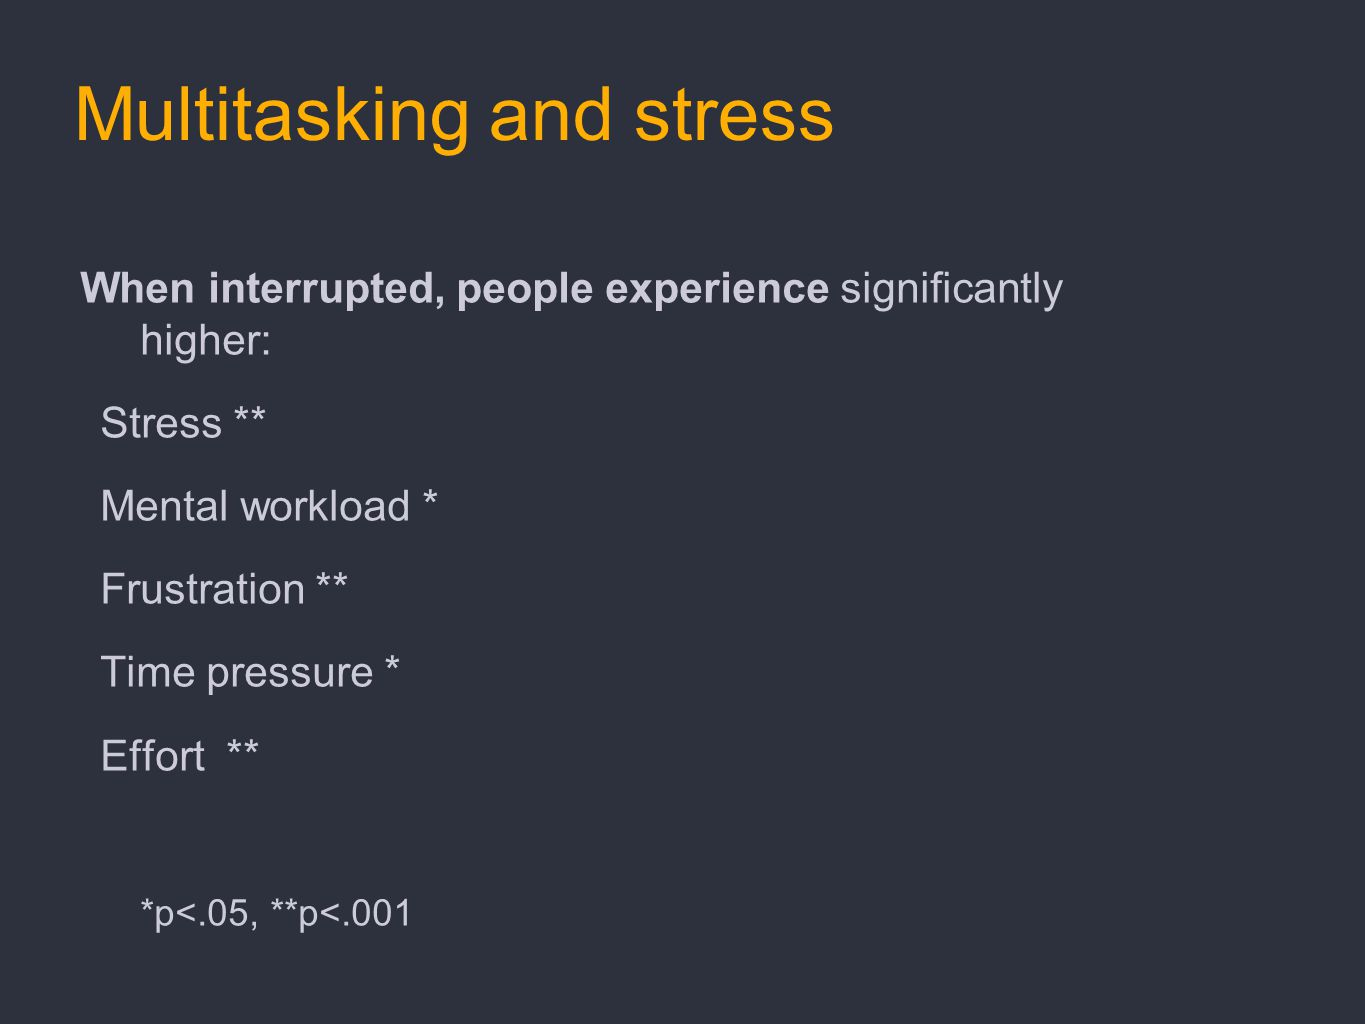 Multitasking and stress When interrupted, people experience significantly higher: Stress ** Mental workload * Frustration ** Time pressure * Effort **